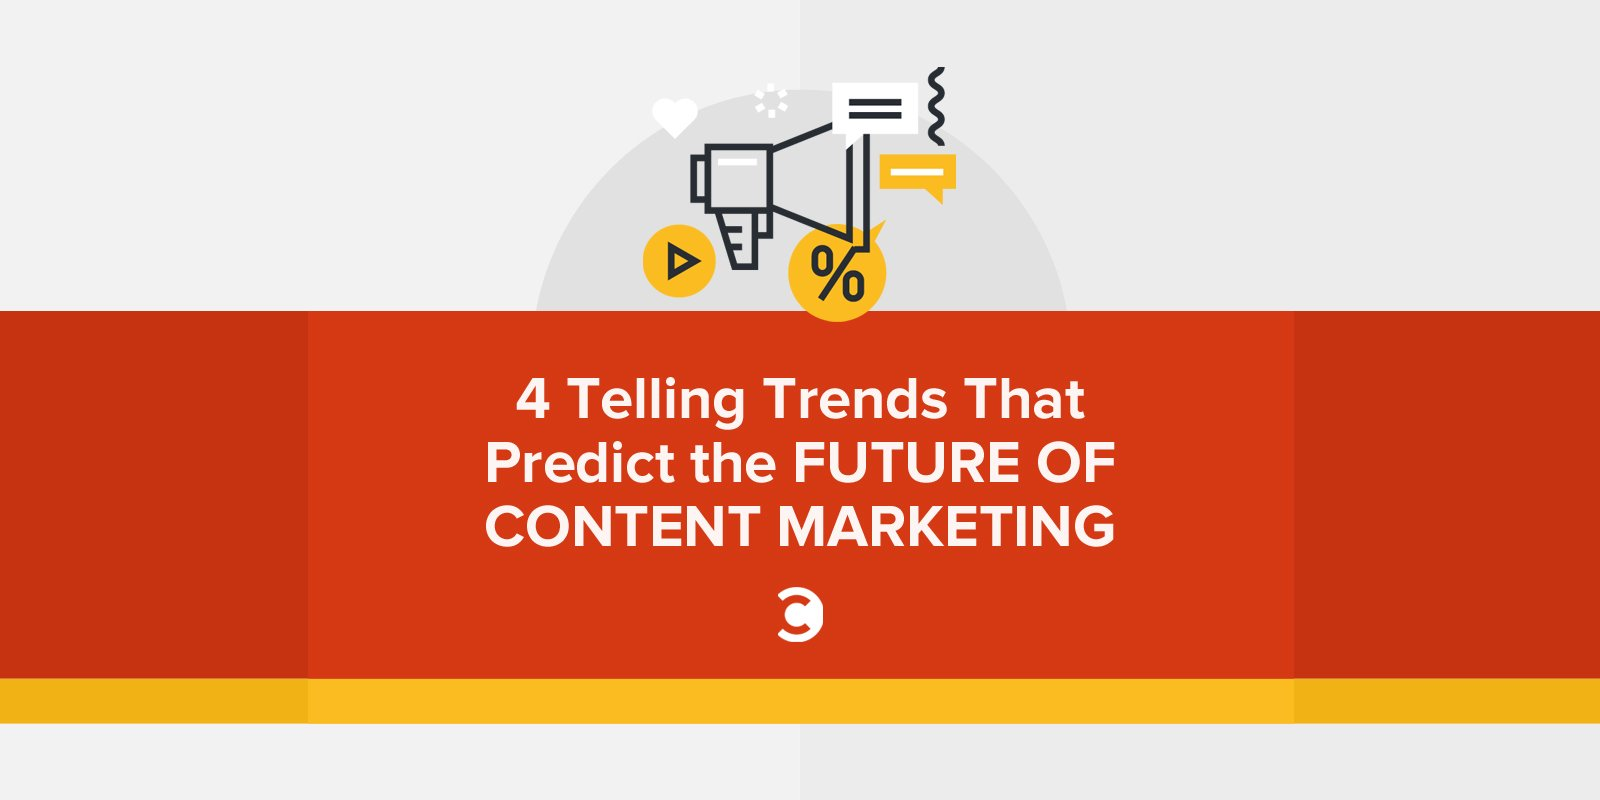 4 Telling Trends That Predict the Future of Content Marketing